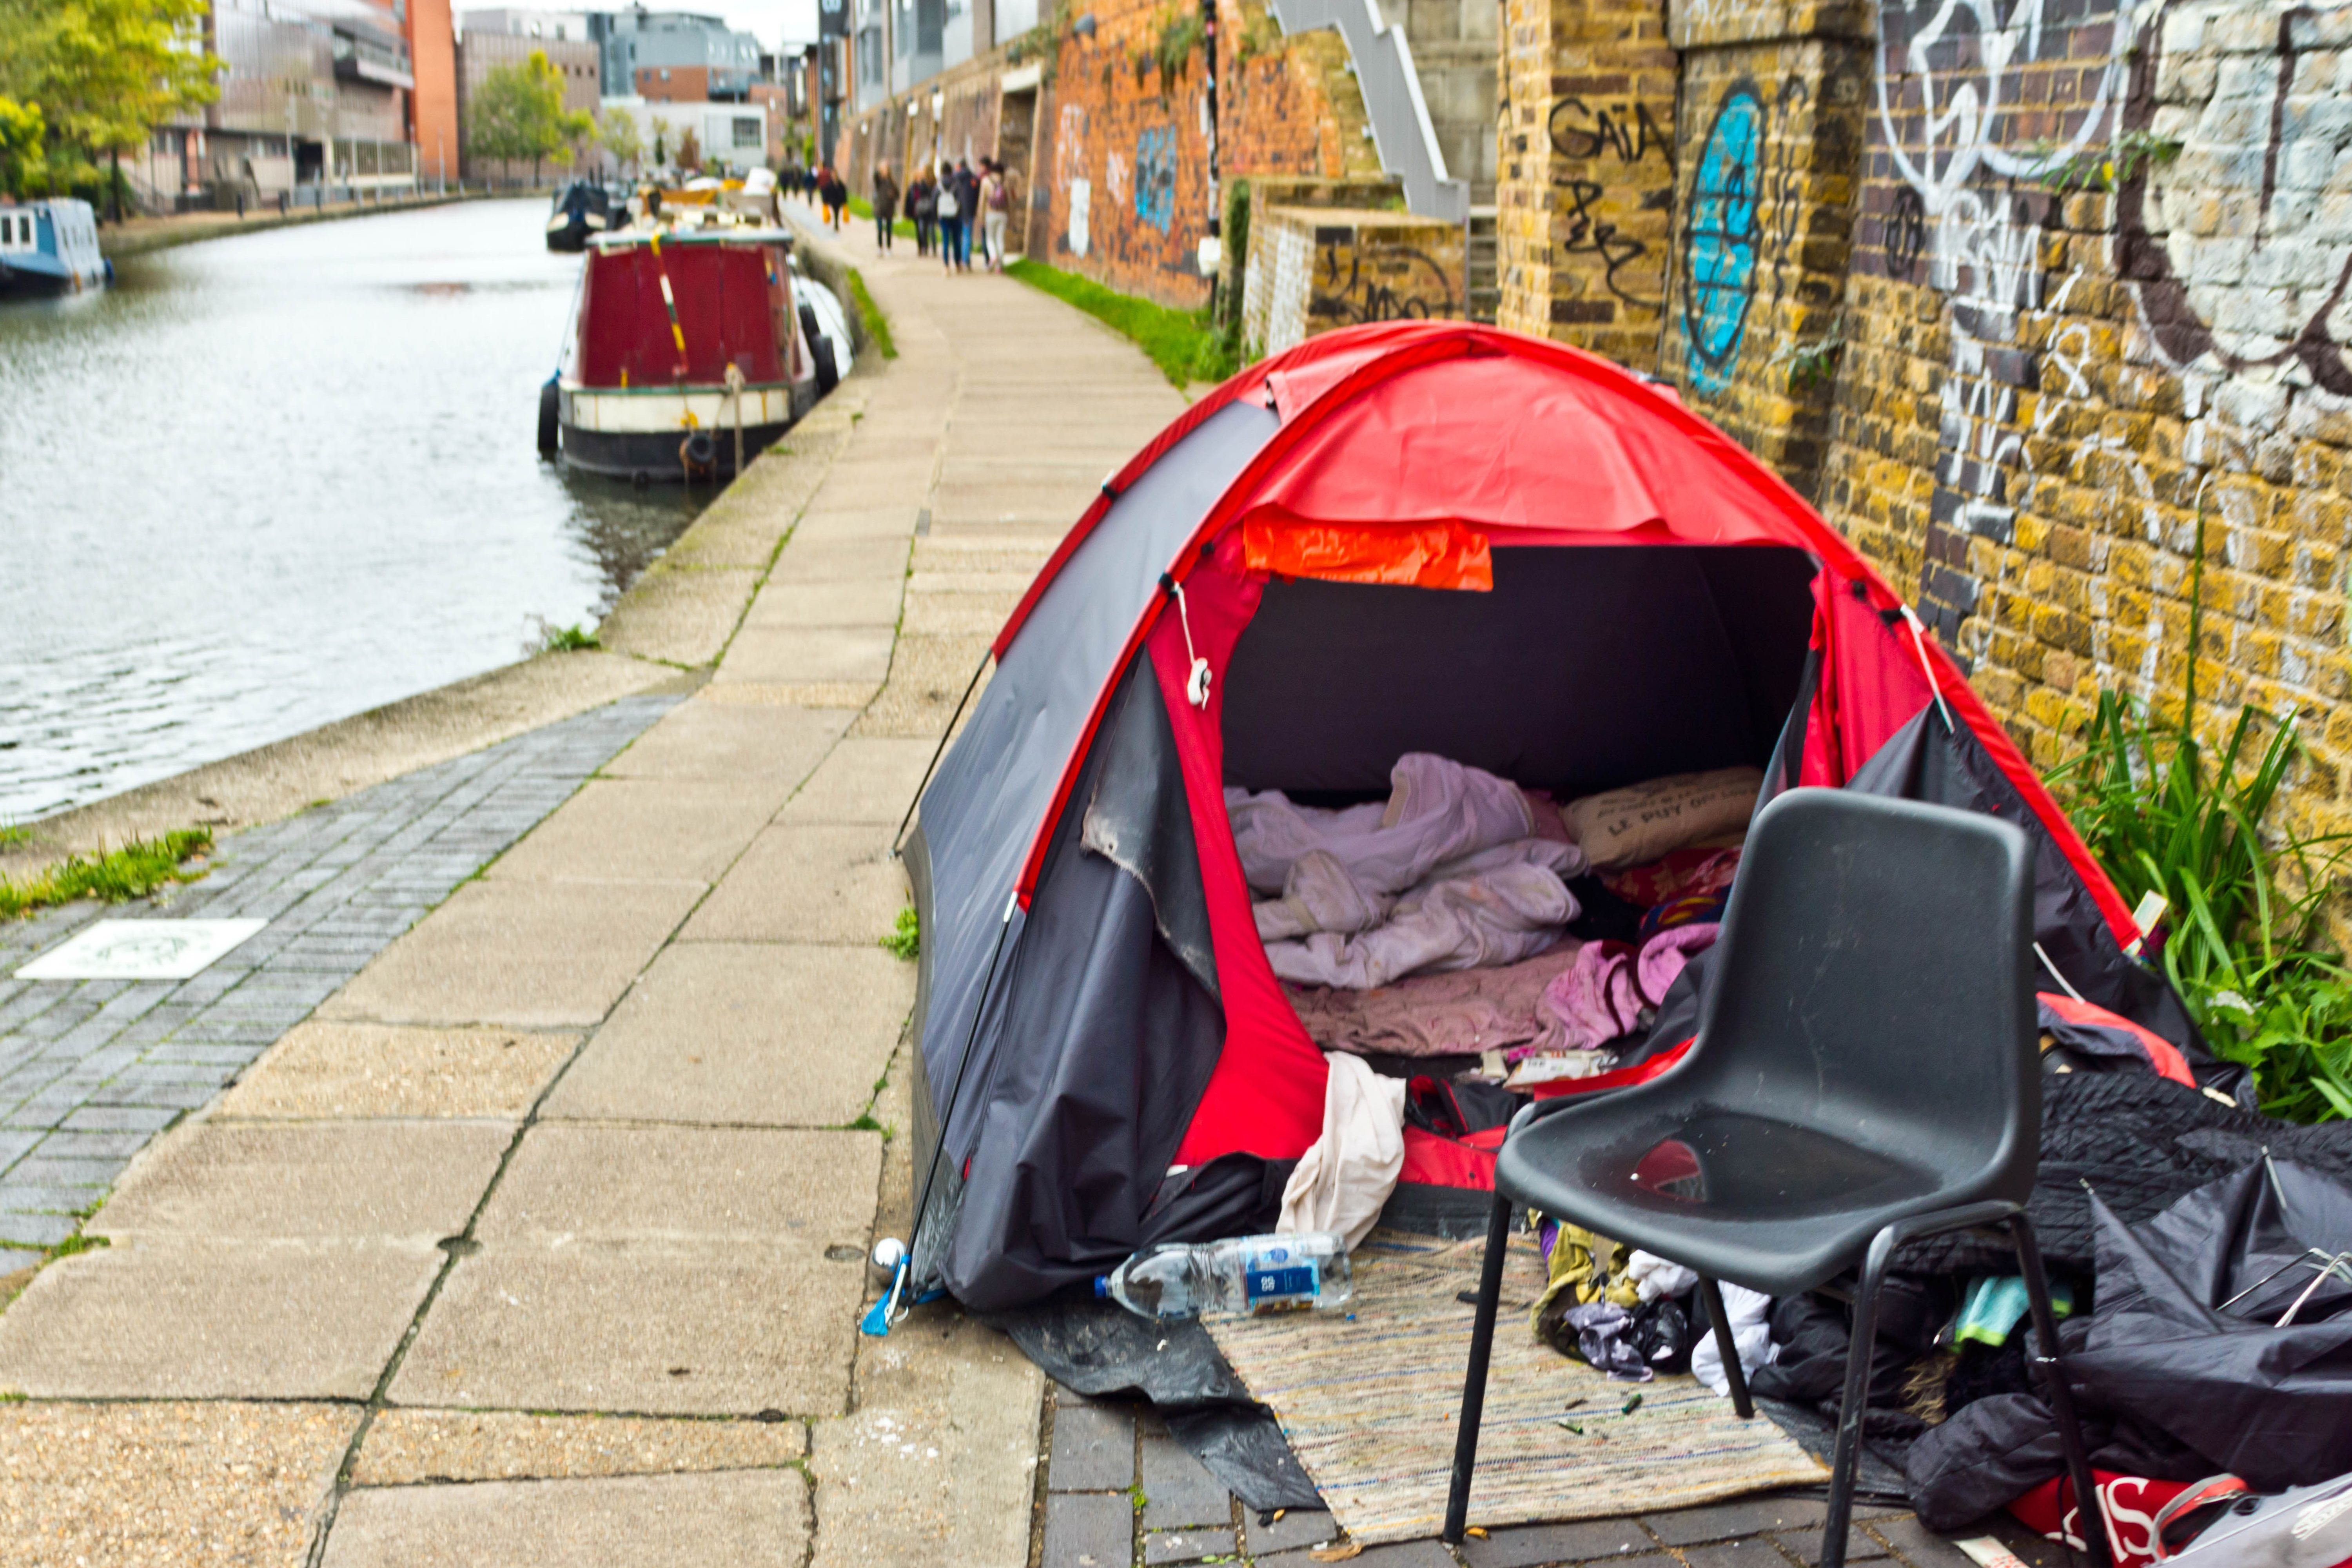 Forget Novelty Gifts, Secret Santa Present For The Homeless Really Makes A